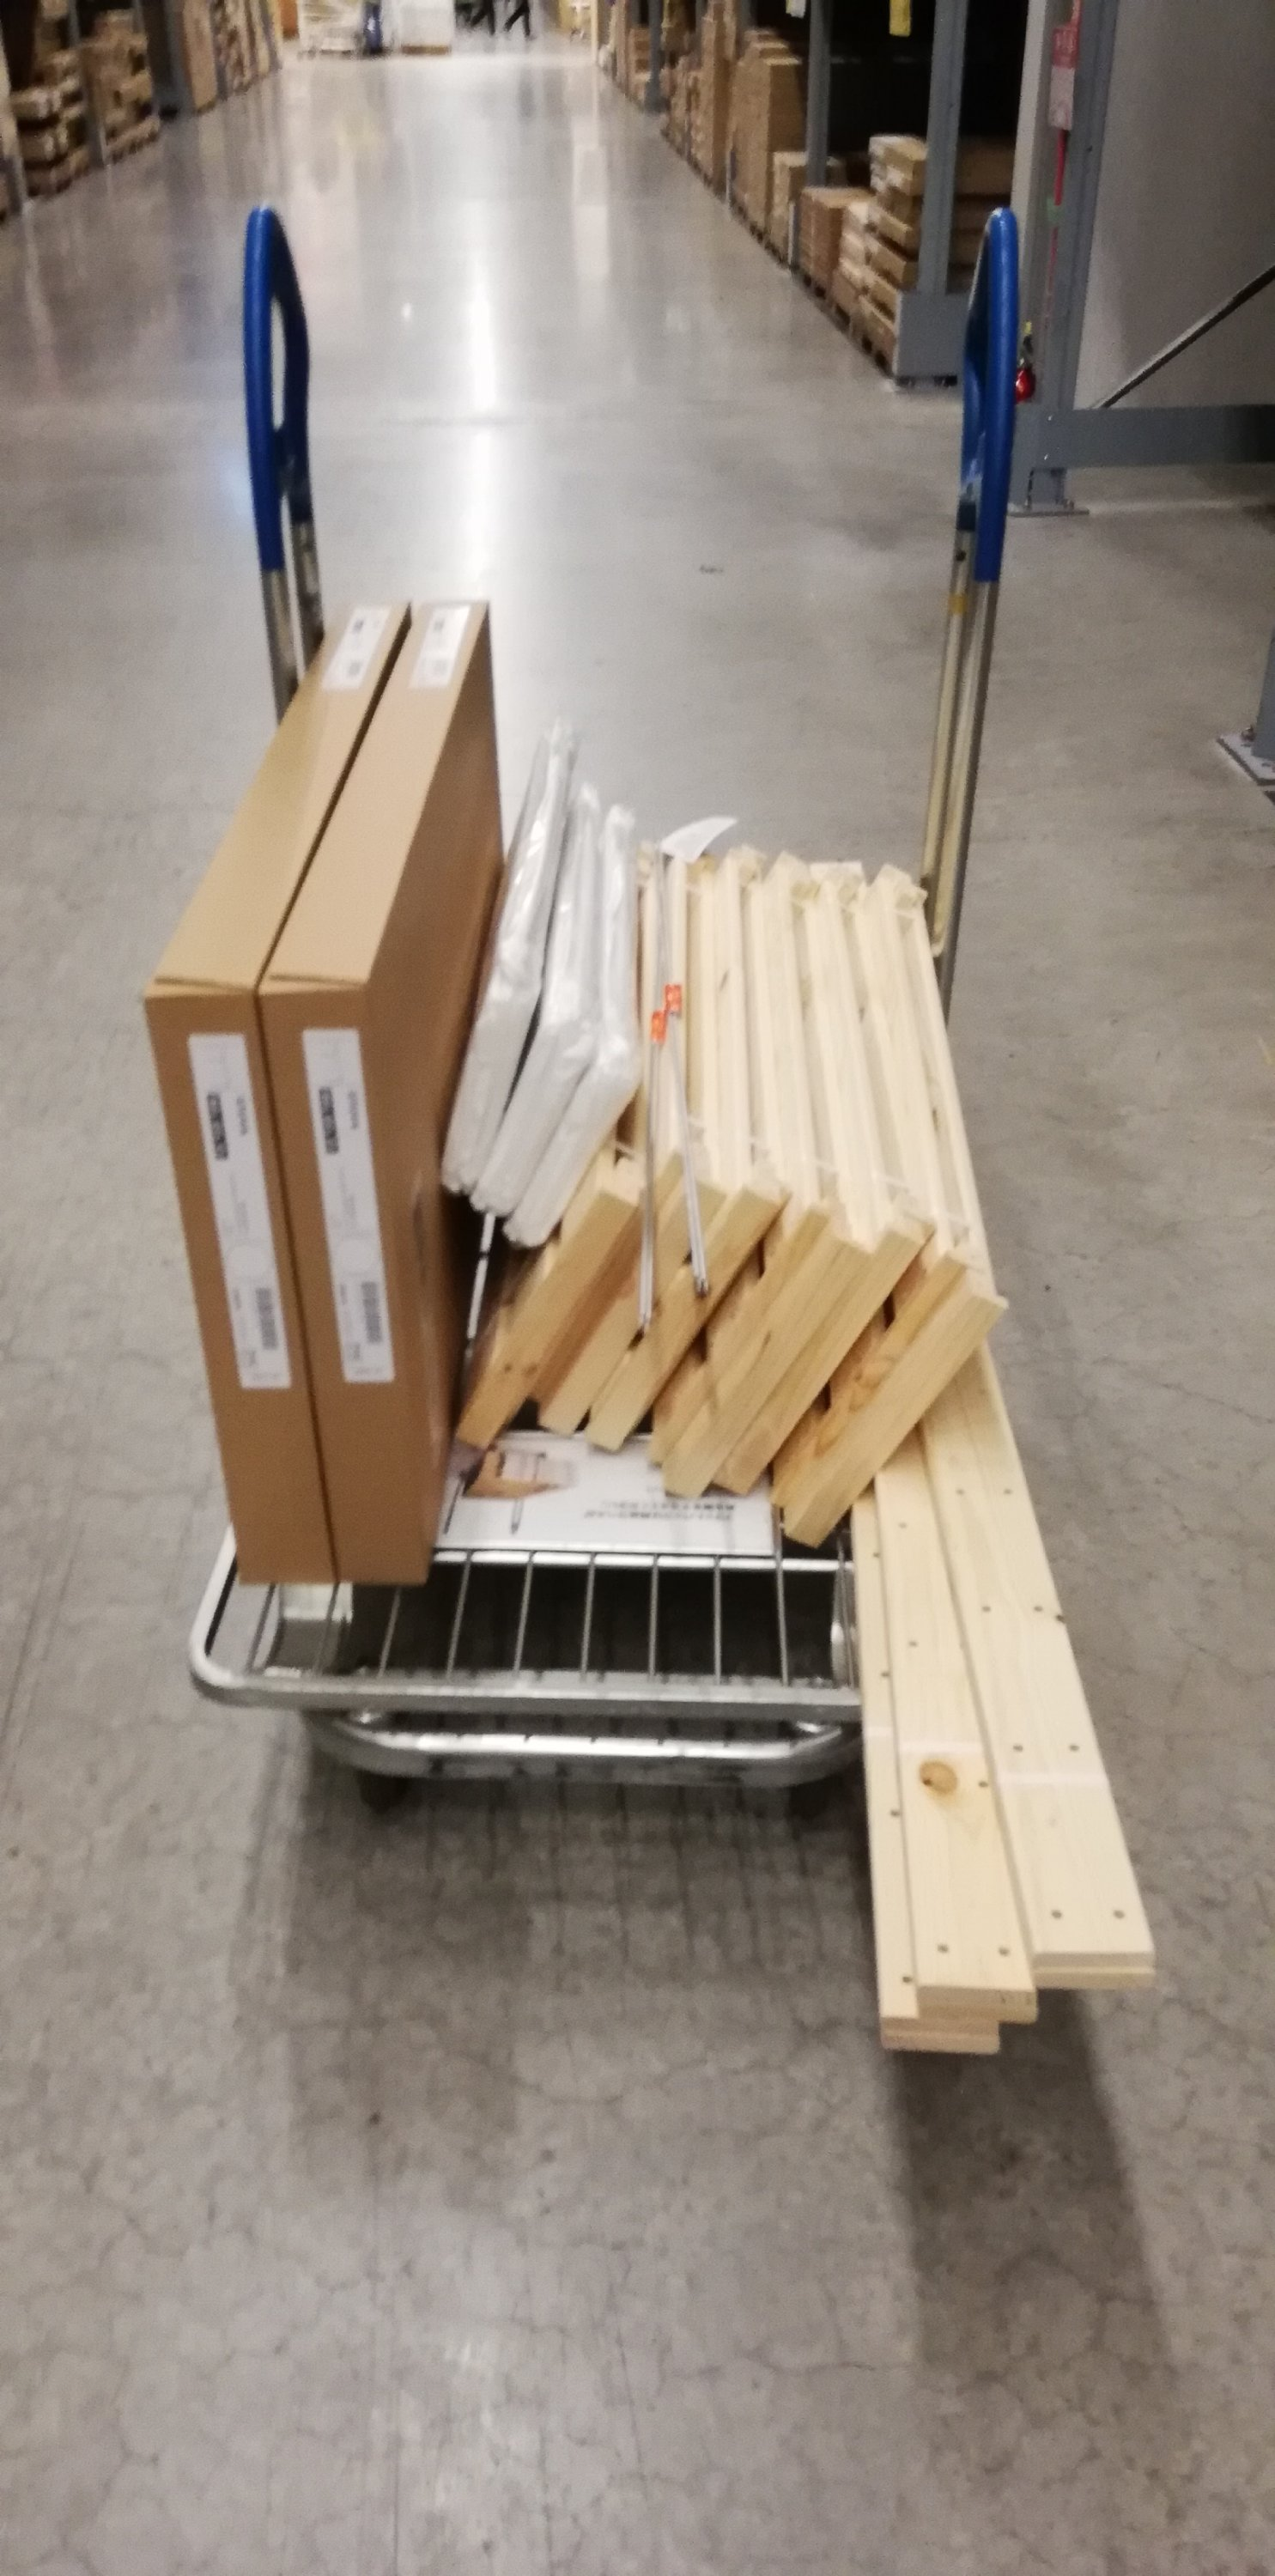 ikea open wood rack